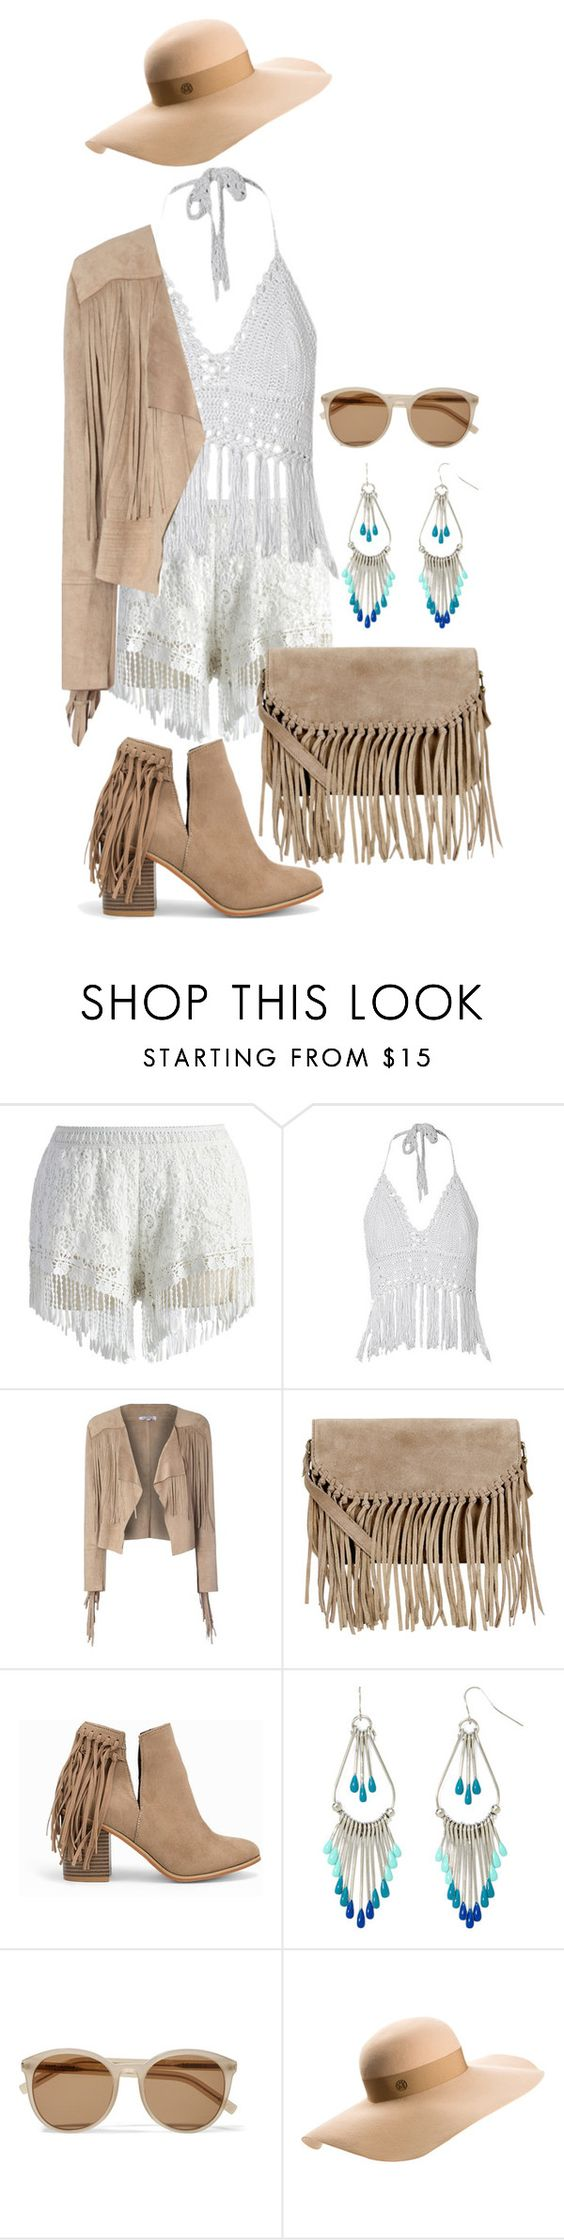 """Coachella..."" by maryv-1 ❤ liked on Polyvore featuring Chicwish, Glamorous, Accessorize, Nly Shoes, Decree, Yves Saint Laurent and Maison Michel"